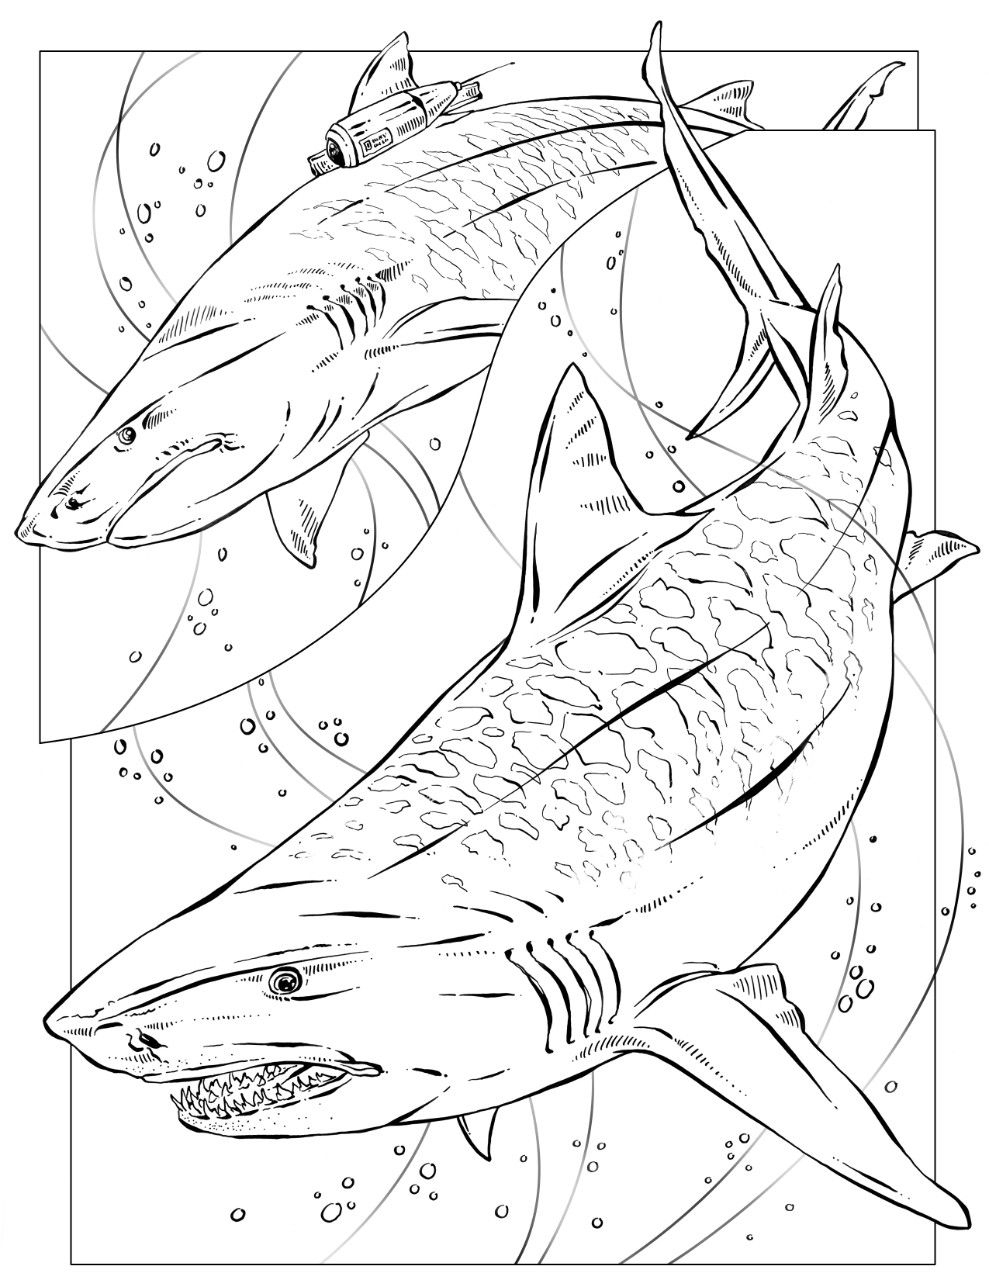 Coloring Book: Animals (J To Z) | Shark Coloring Pages tout Coloriage Requin